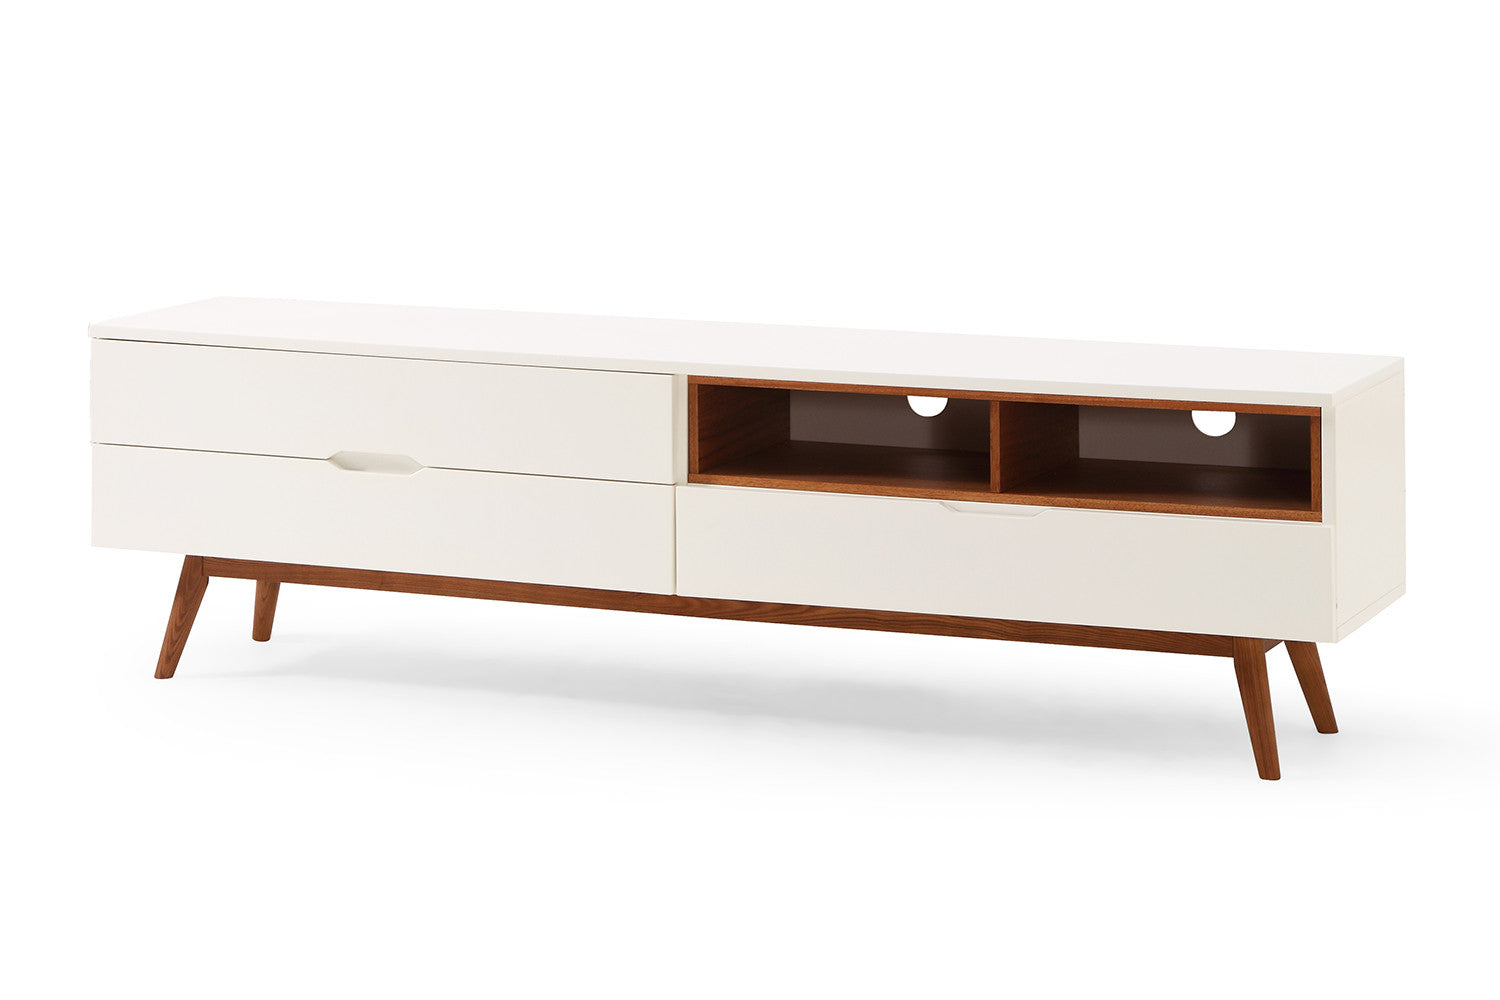 Meuble tv design scandinave lema dewarens for Meubles bois flotte design